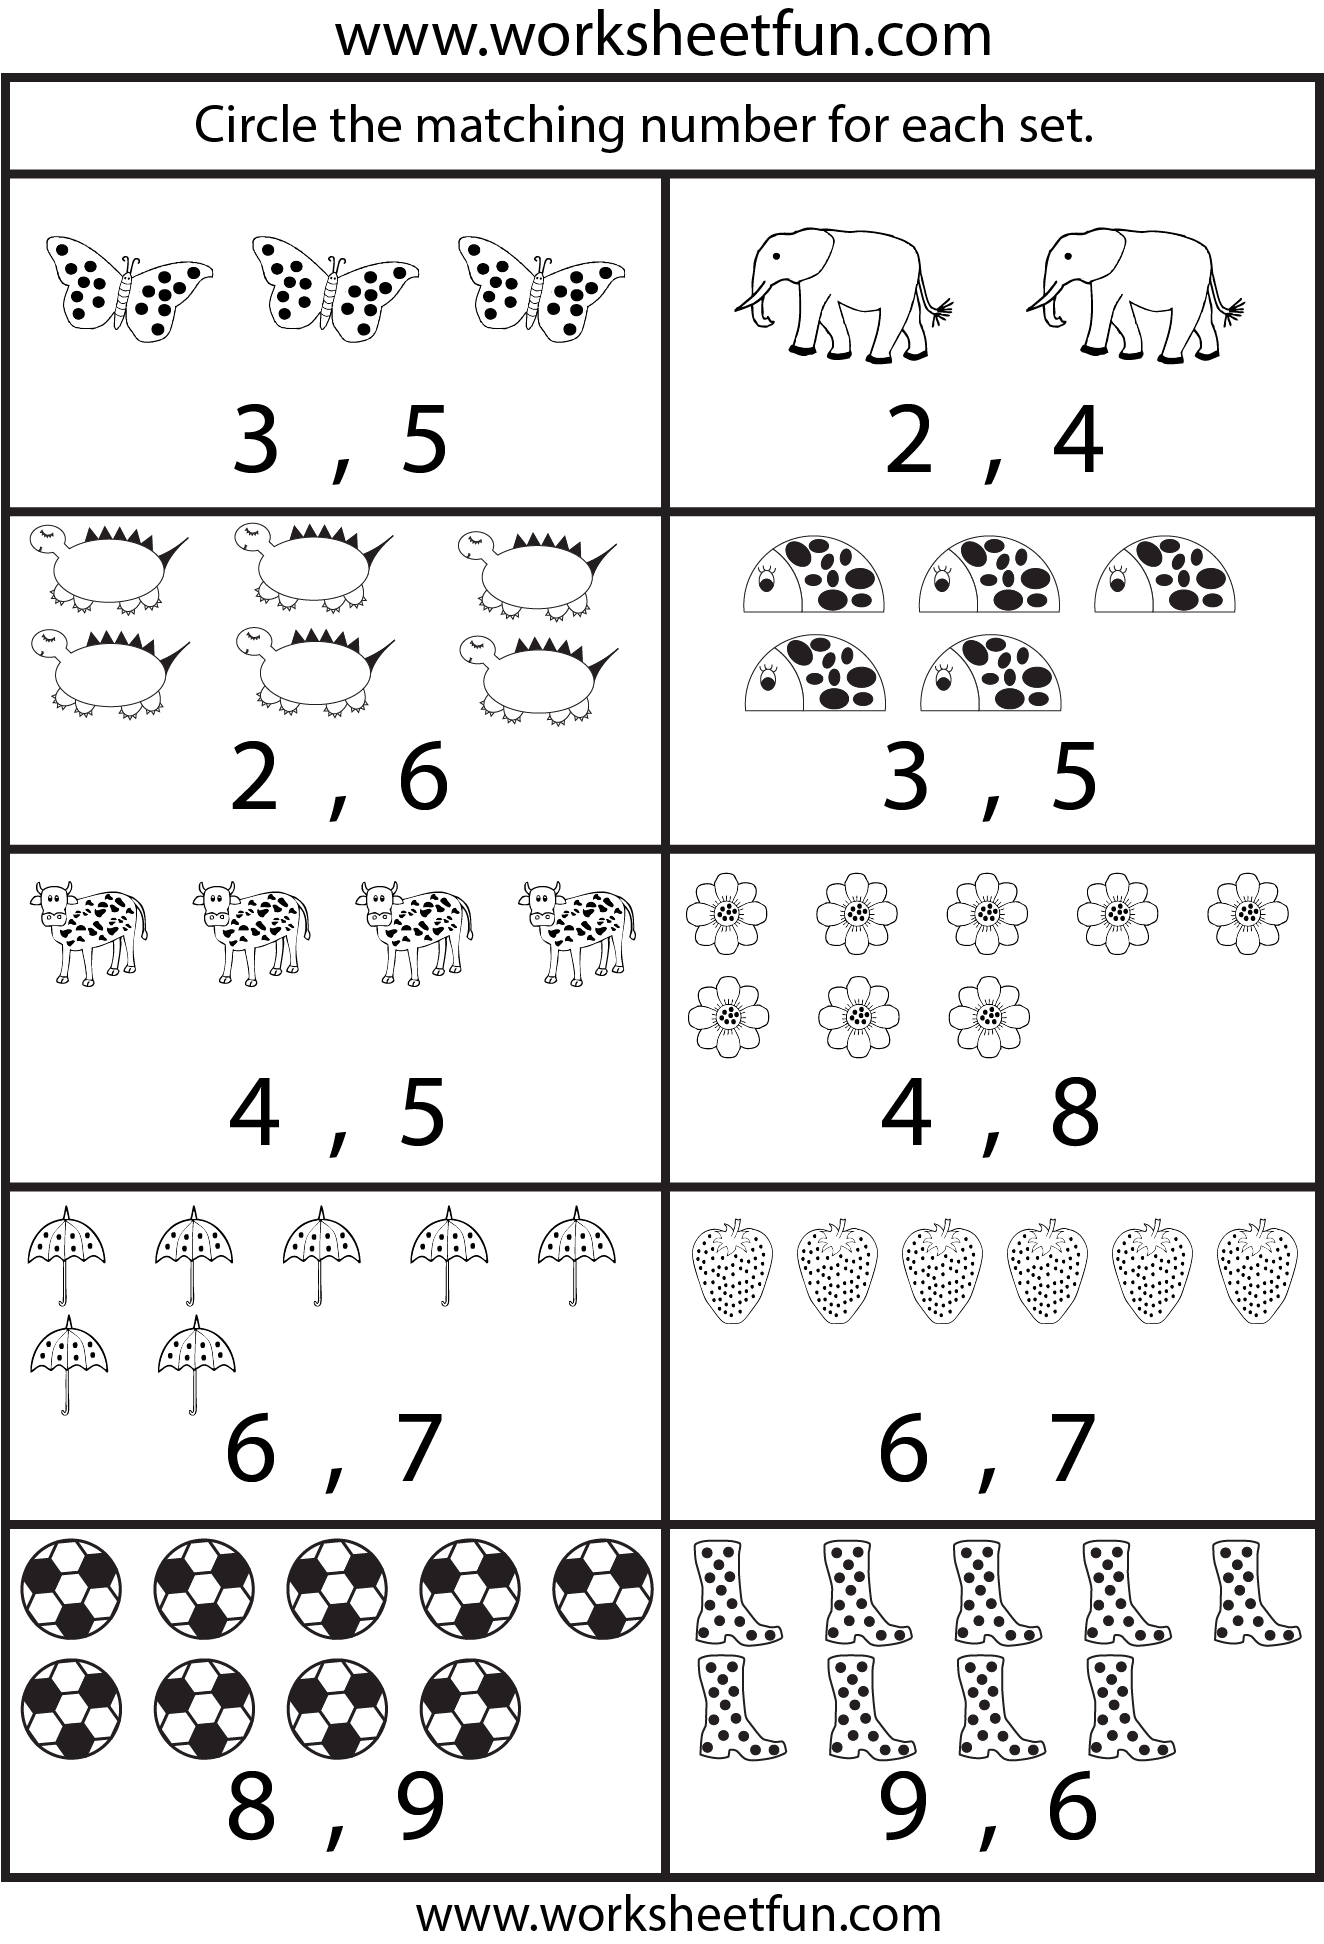 Worksheet Free Counting Worksheets 1-20 free counting worksheets 1 20 also 1000 images about 5 10 numbers on pinterest number 20